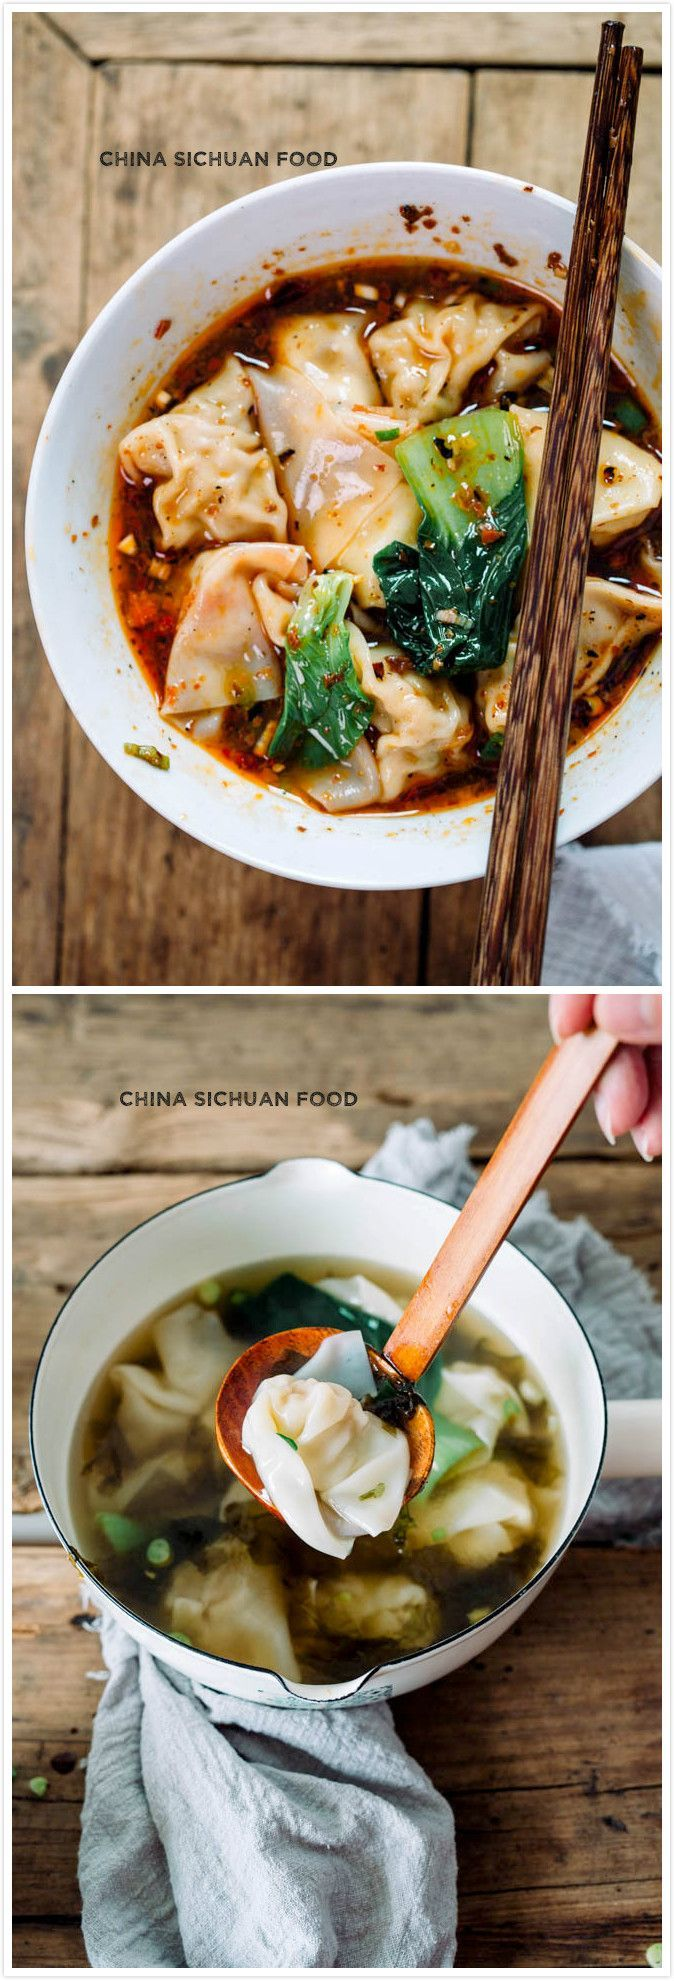 Ultimate guide to wonton soups chinesefoodrecipes chinese food ultimate guide to wonton soups chinesefoodrecipes chinese food recipes pinterest chinese food recipes asian food recipes and baby food recipes forumfinder Choice Image